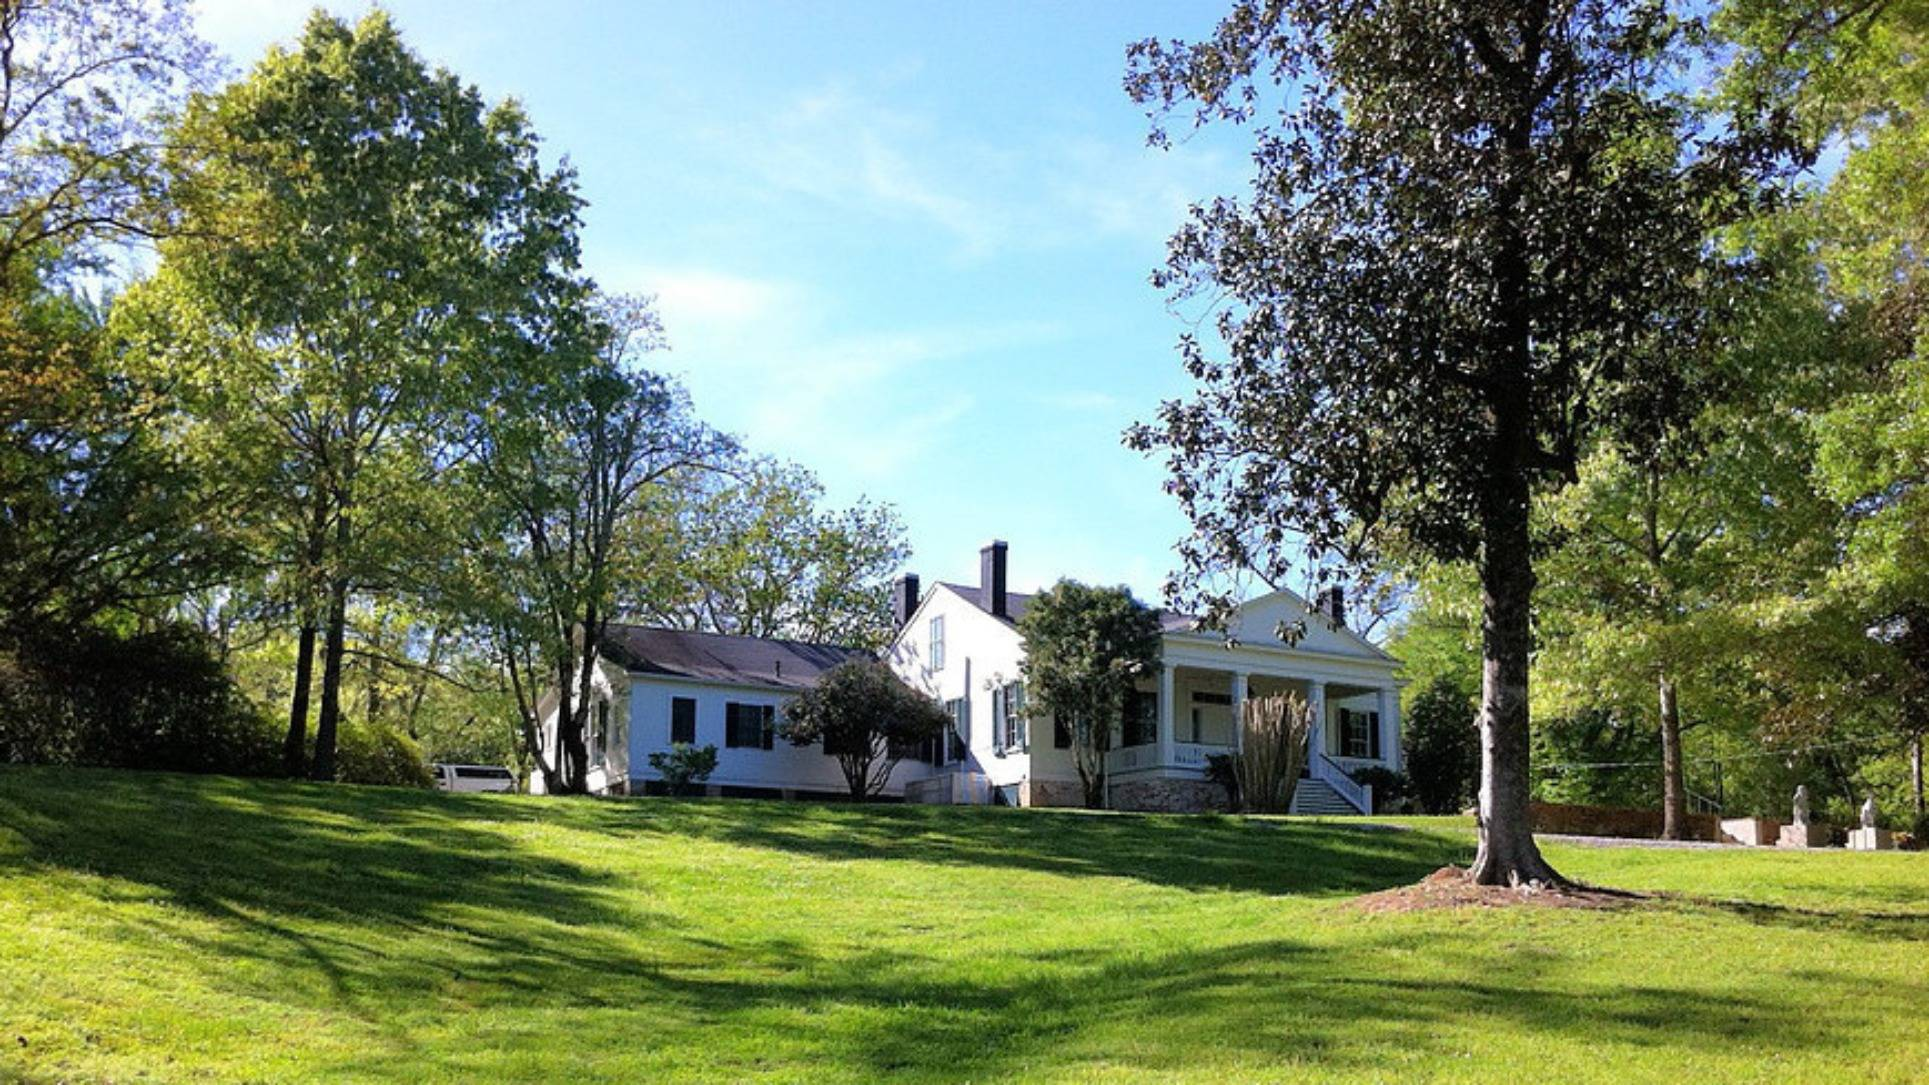 A large lawn in front of a house at Collina Plantation Inn.